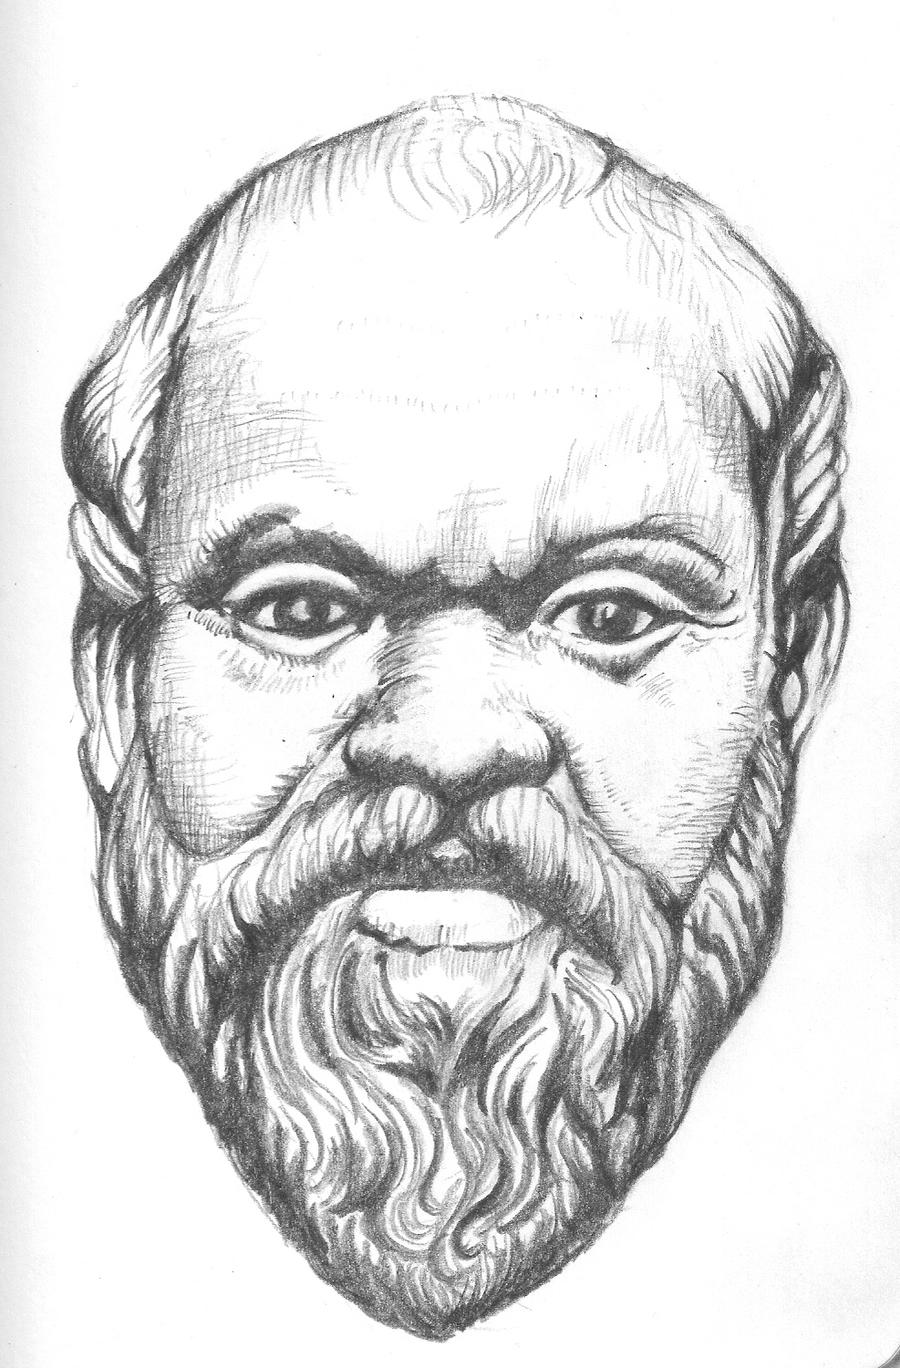 Socrates by Golgonooza on DeviantArt